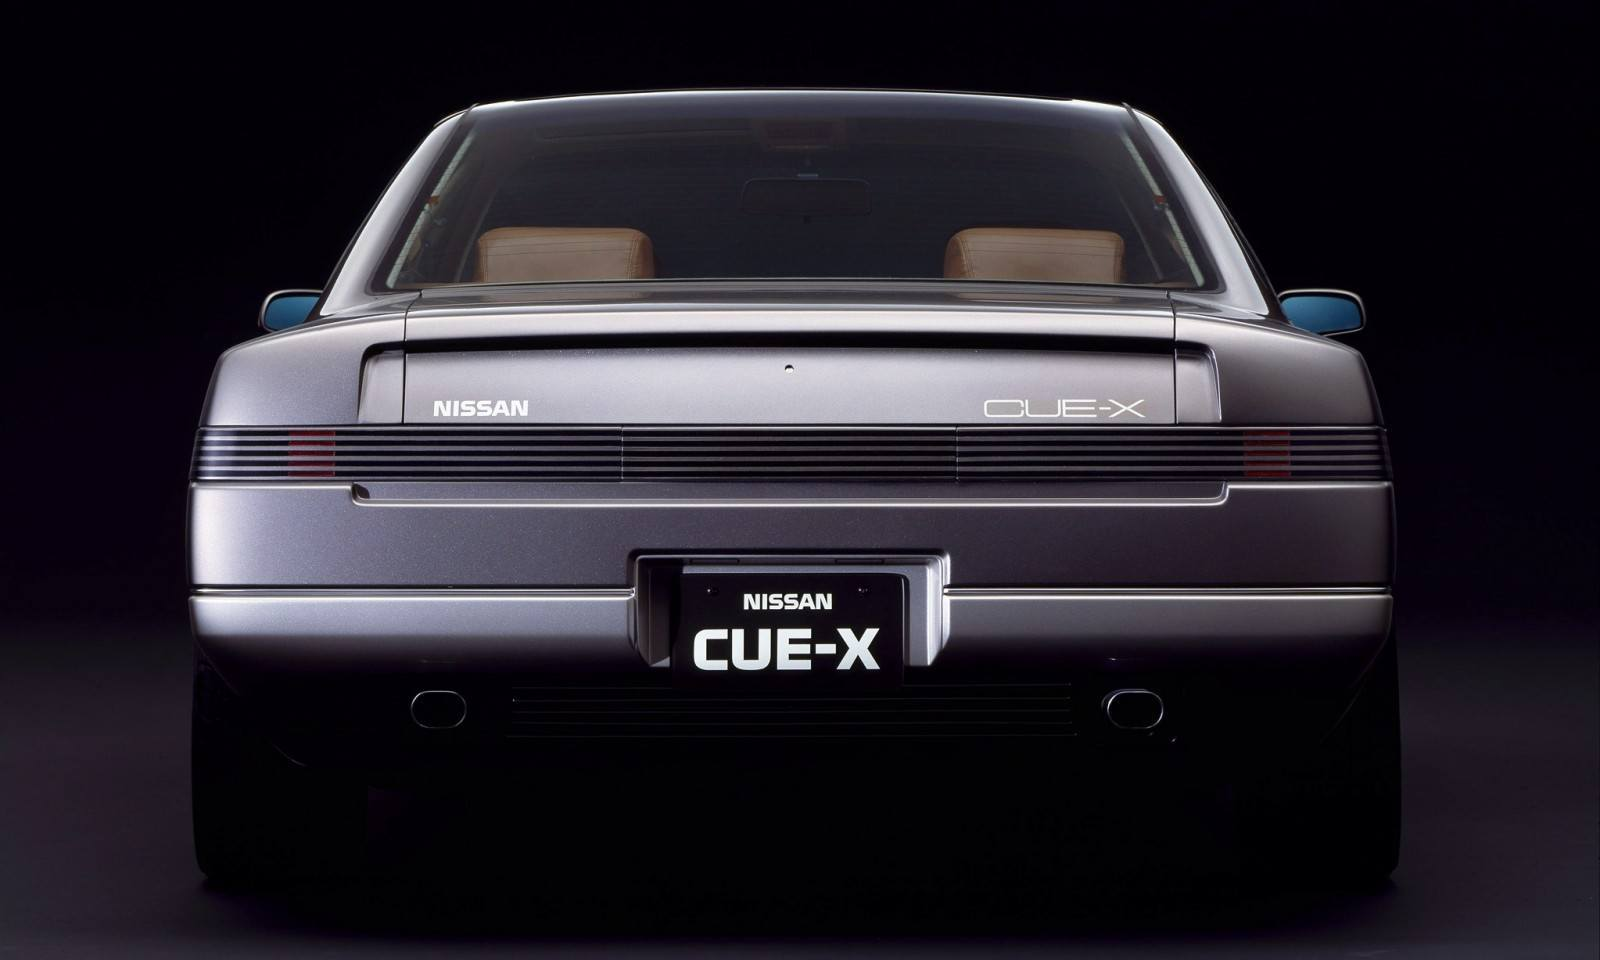 Concept Flashback - 1985 Nissan Cue-X Inspired Original Infiniti Q45 Flagship and Future Q80 23